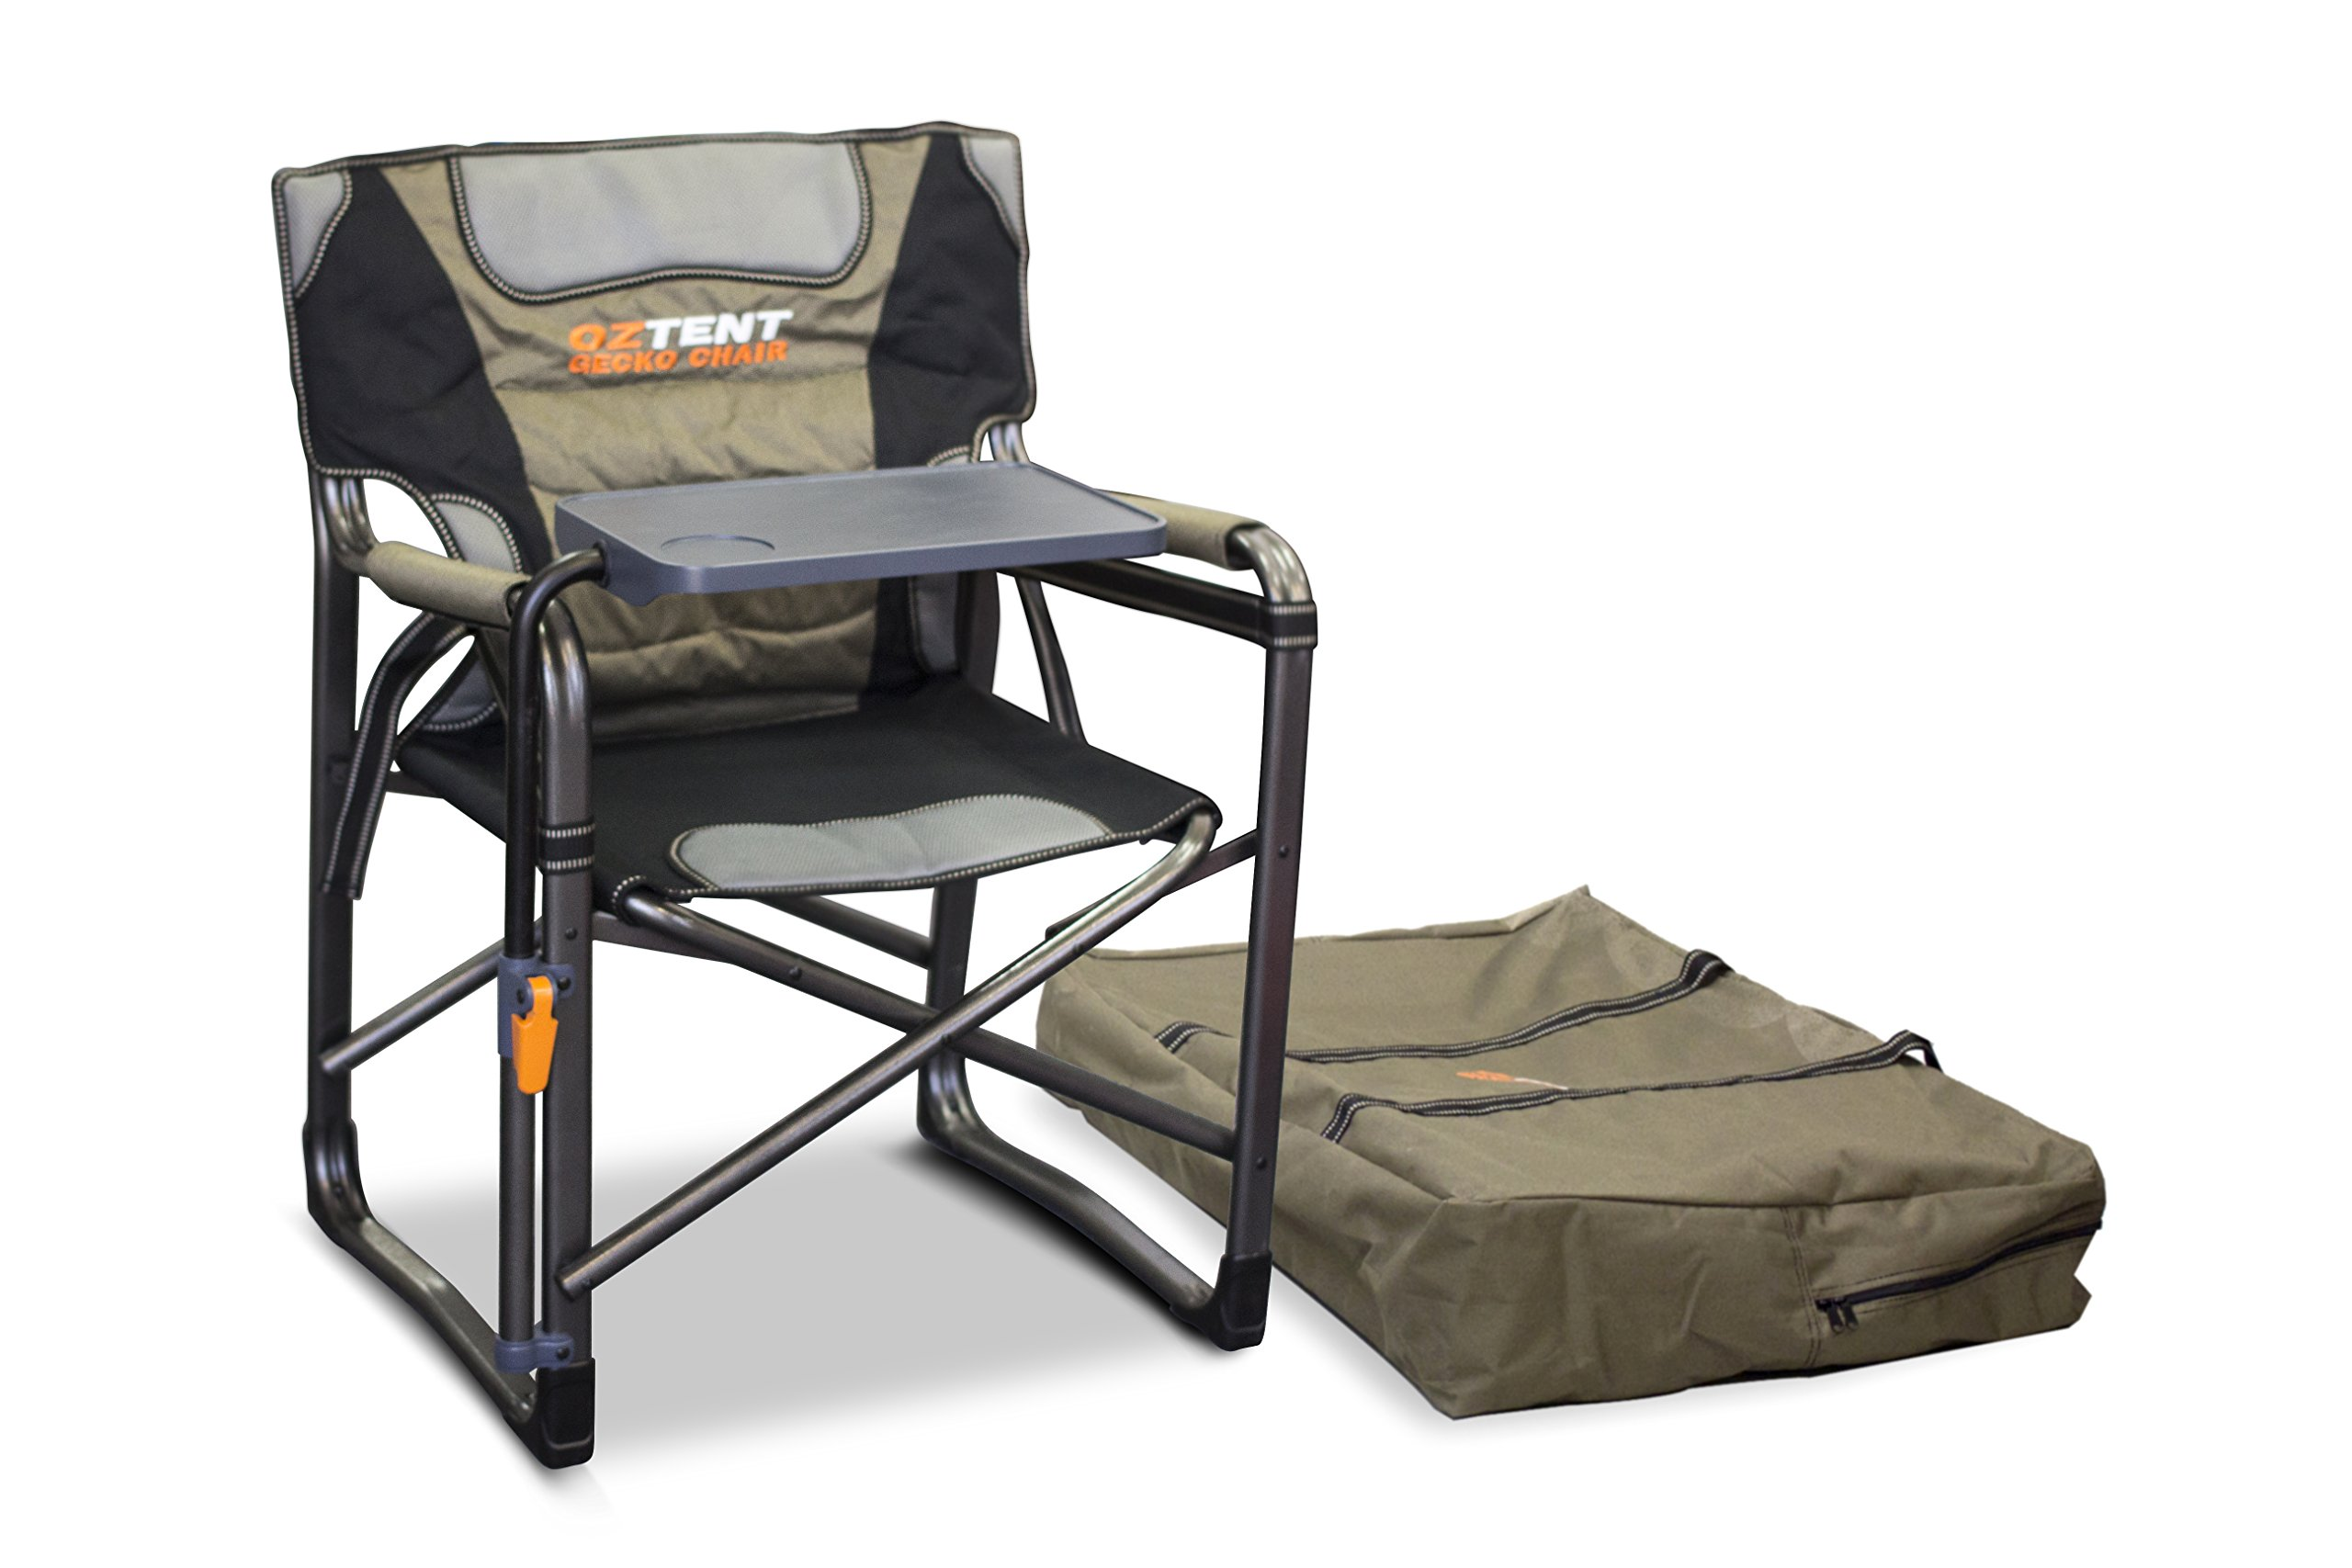 OzTent Gecko Camping Chair with Lumbar Support and Swivel Table